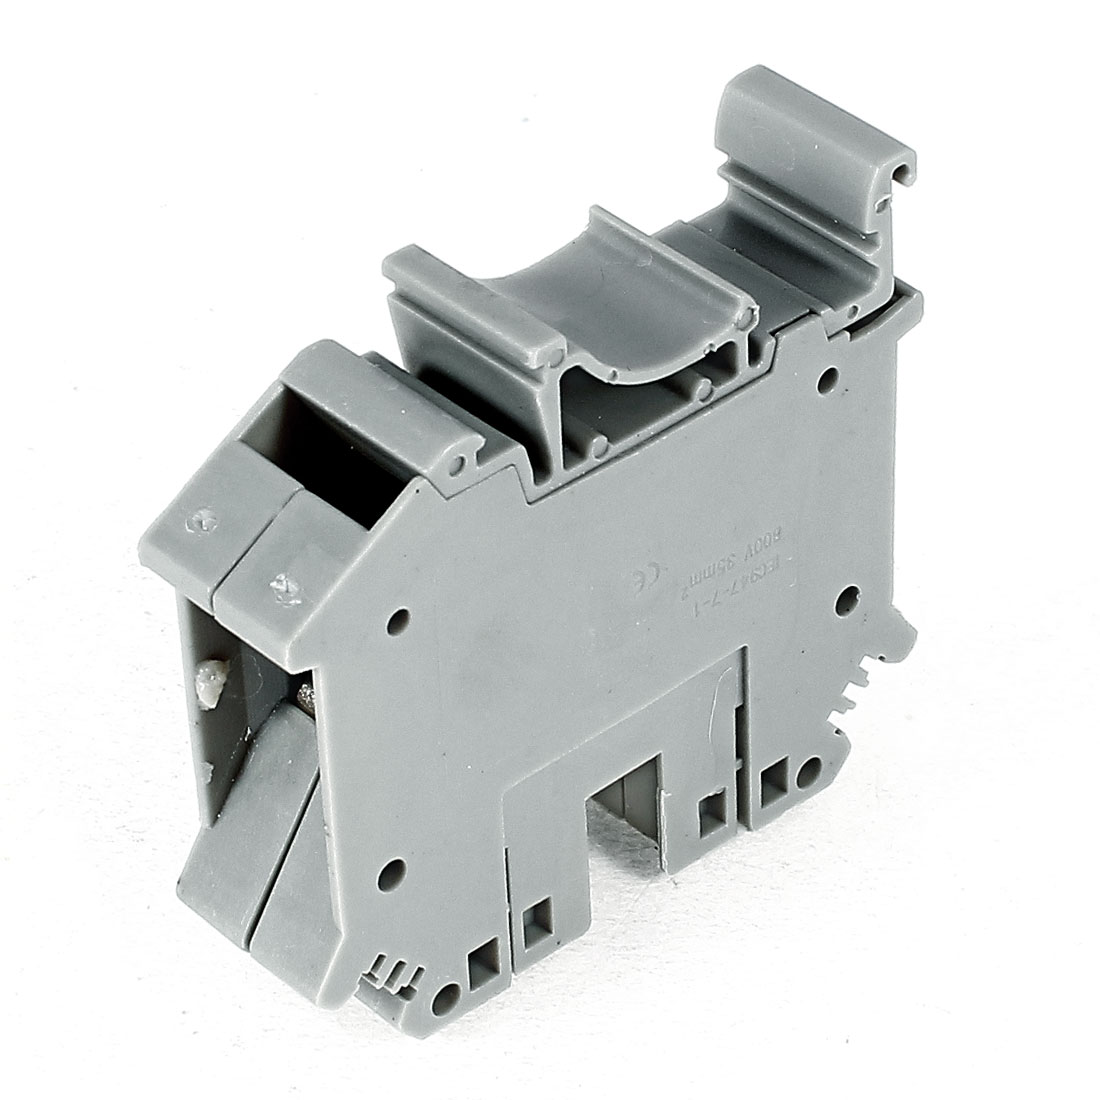 UIK-35 800V 125A 35mm 2 Wire Area Screw Clipping Terminal Block Connector Gray